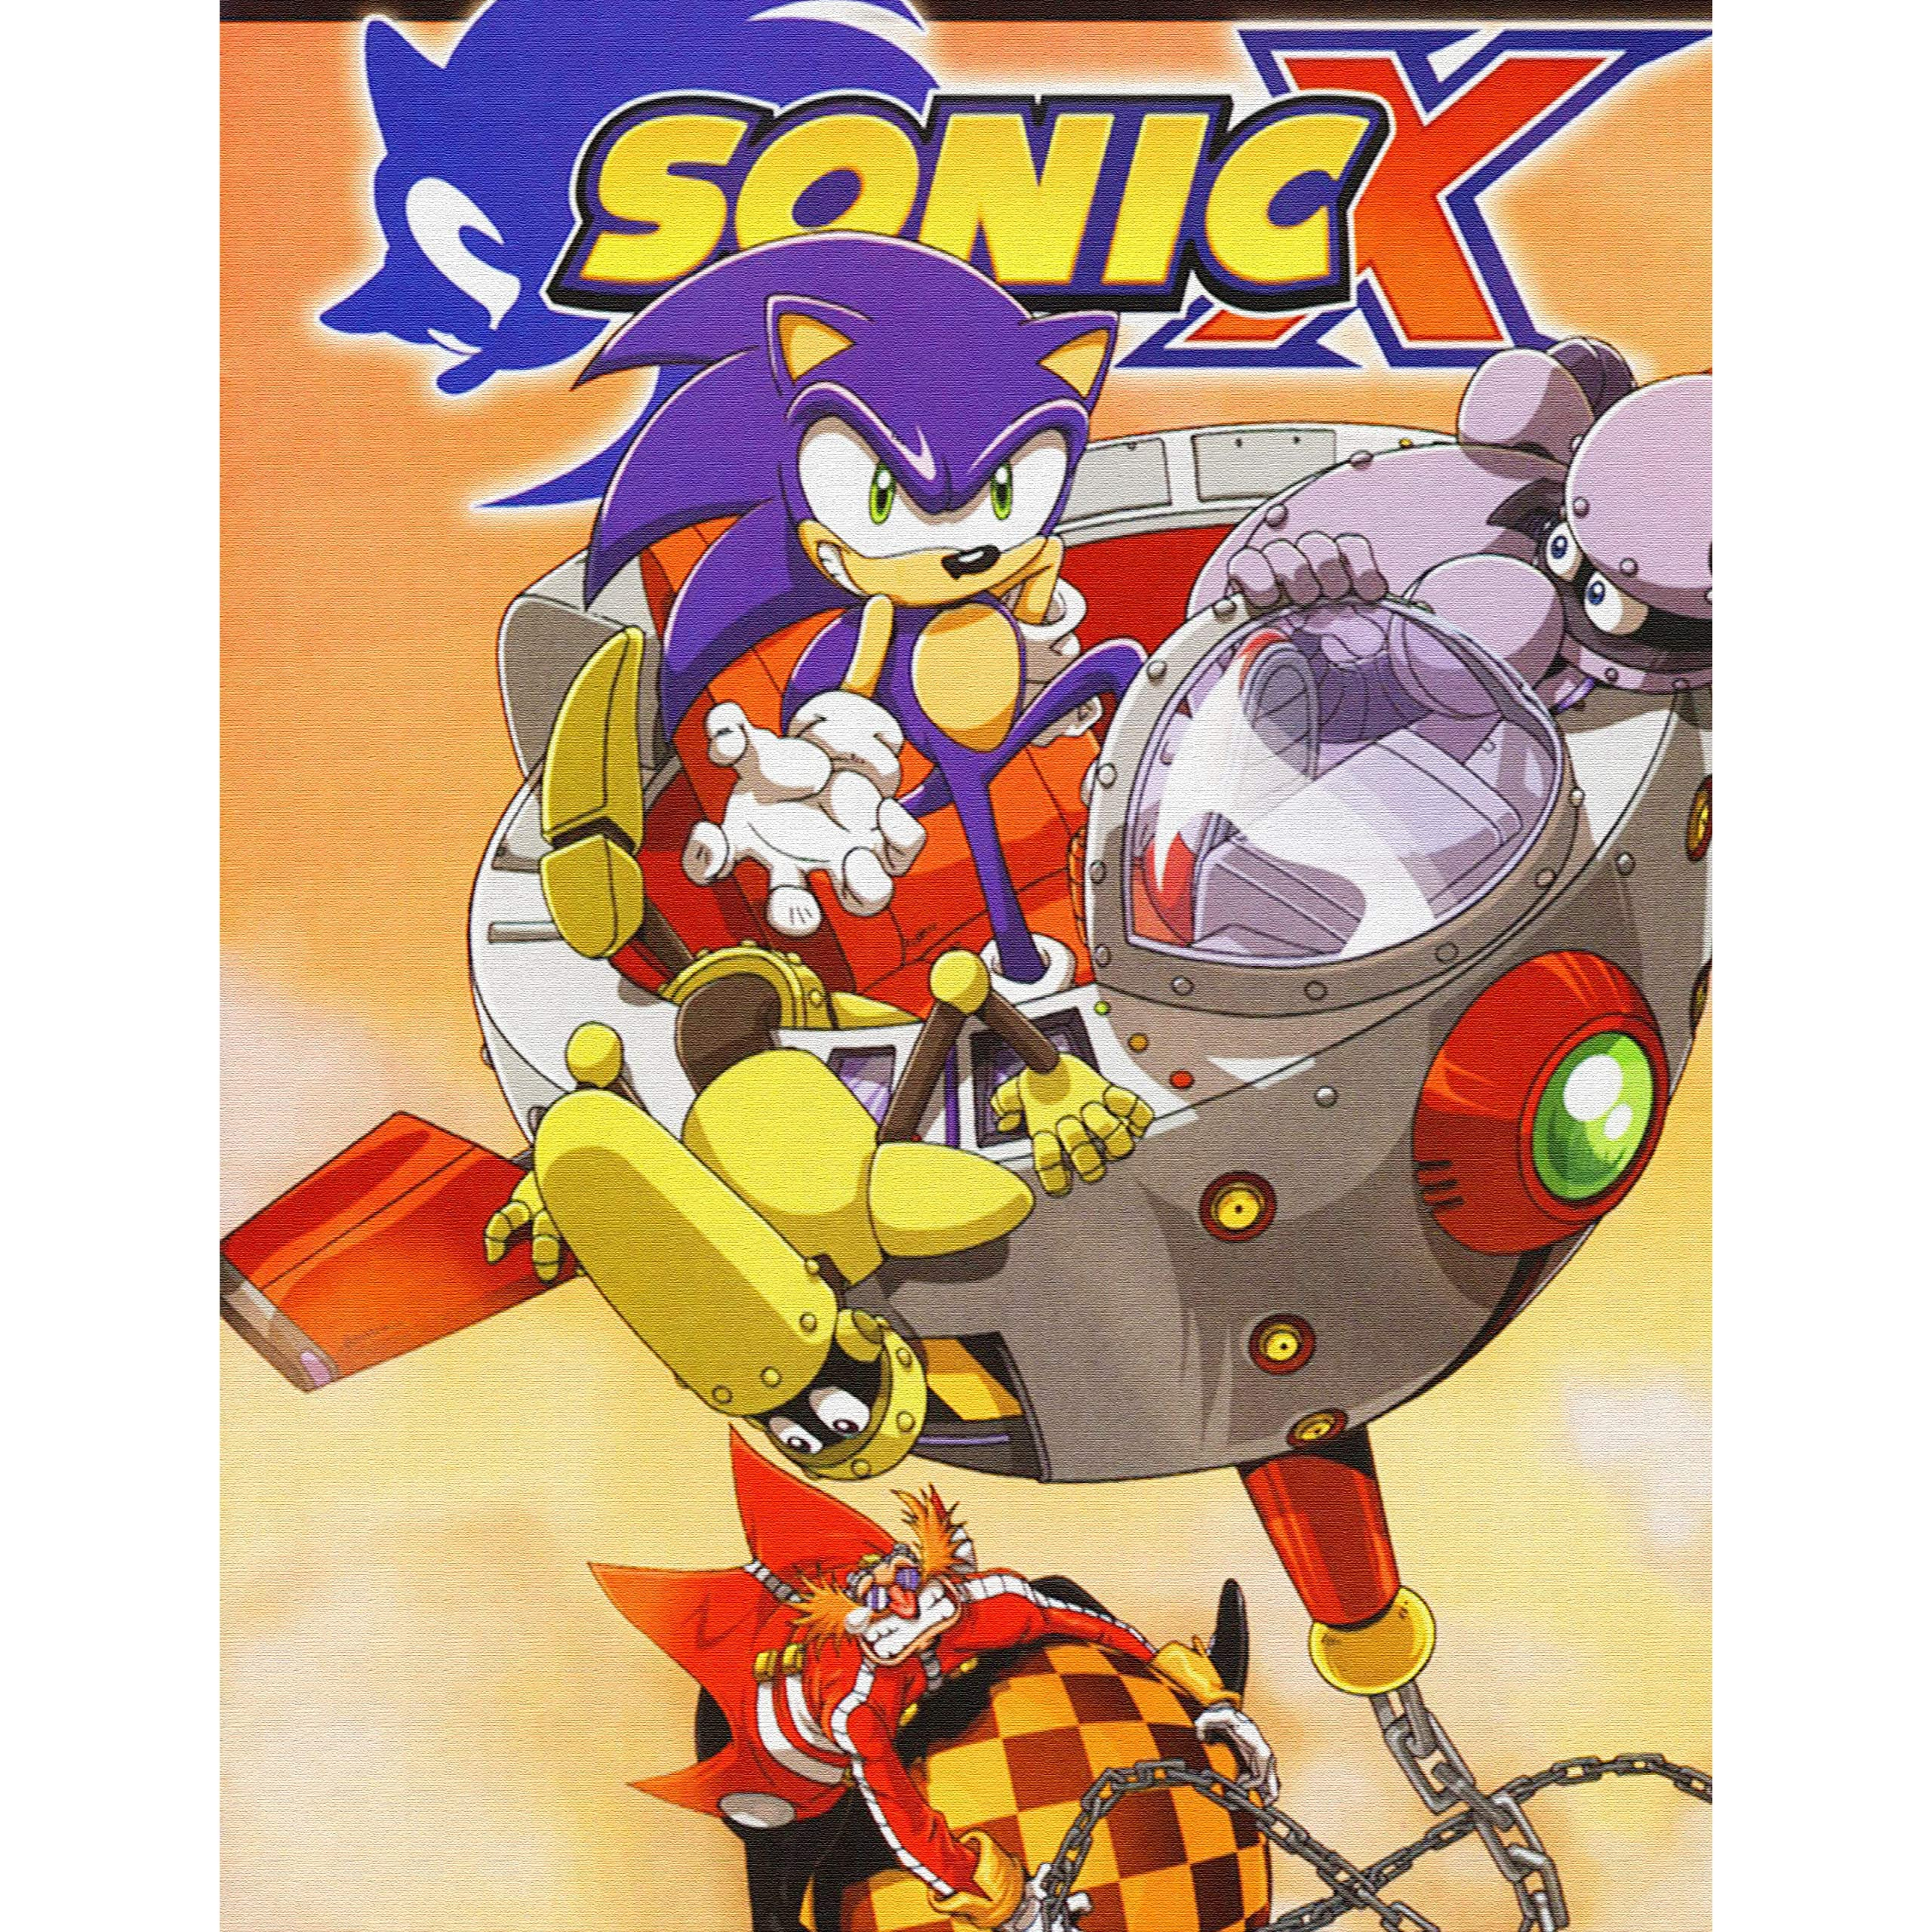 Sonic The Hedgehog Sonic X Comic Book Collection Full Set By Abbie Hayes